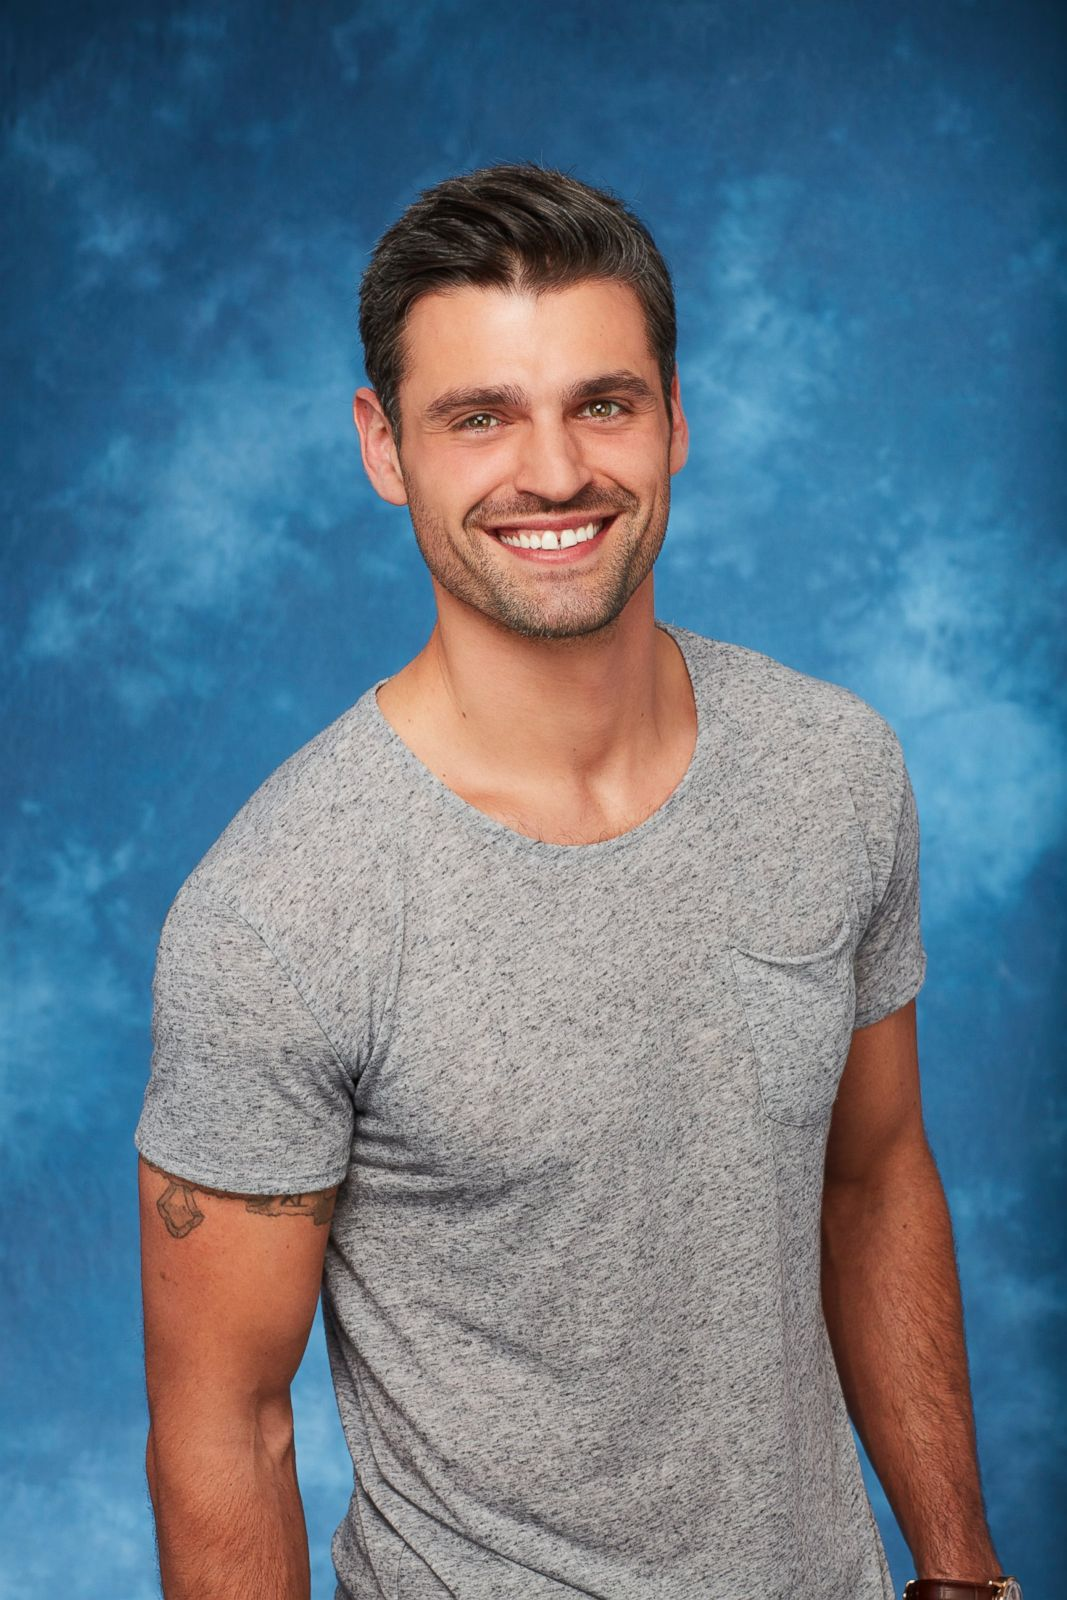 The Bachelorette Meet 31 Men Competing For Rachel Lindsay Photos